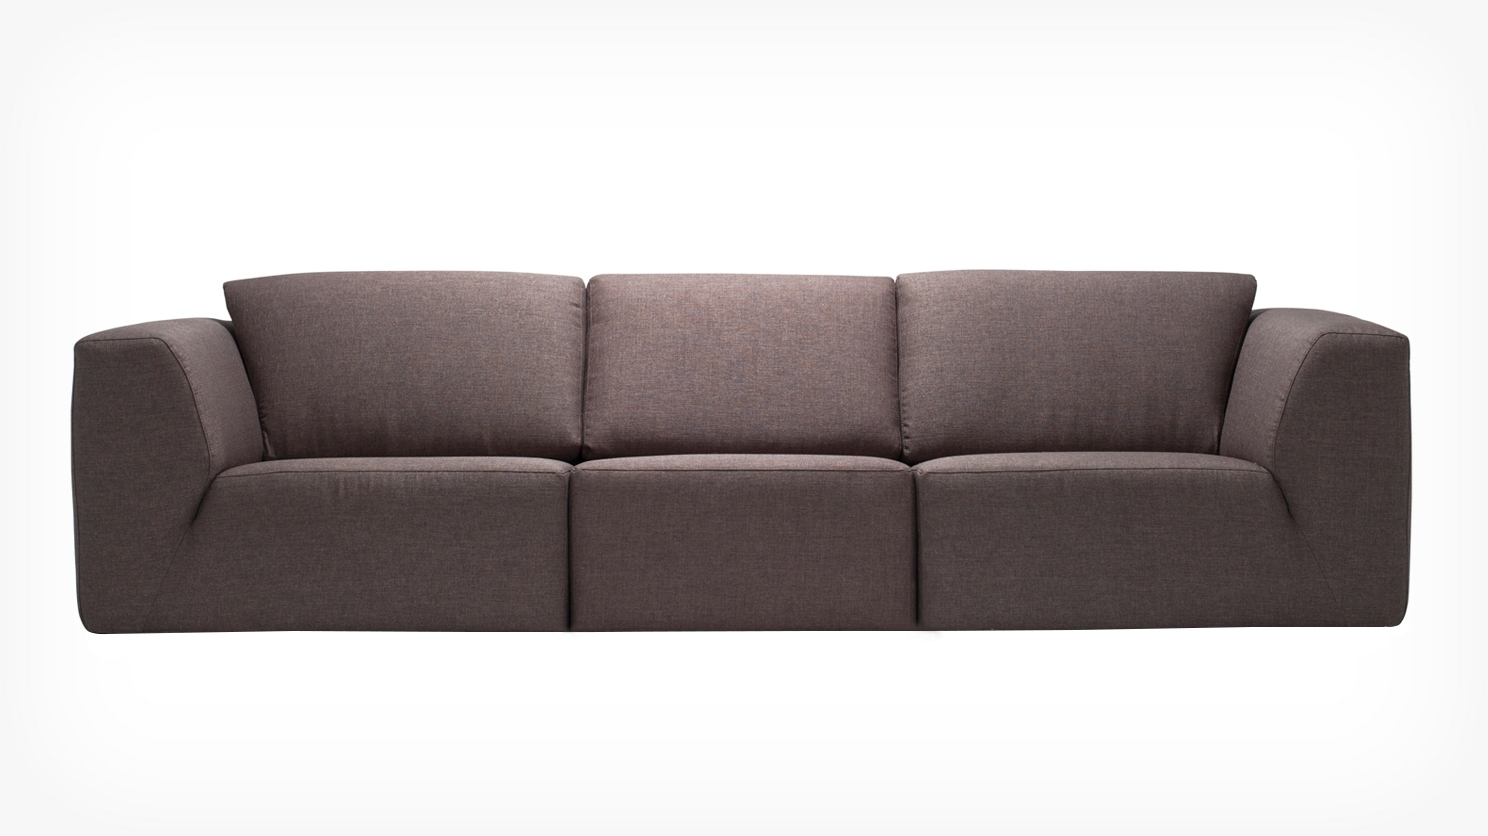 Morten 3 Piece Sectional Sofa Fabric